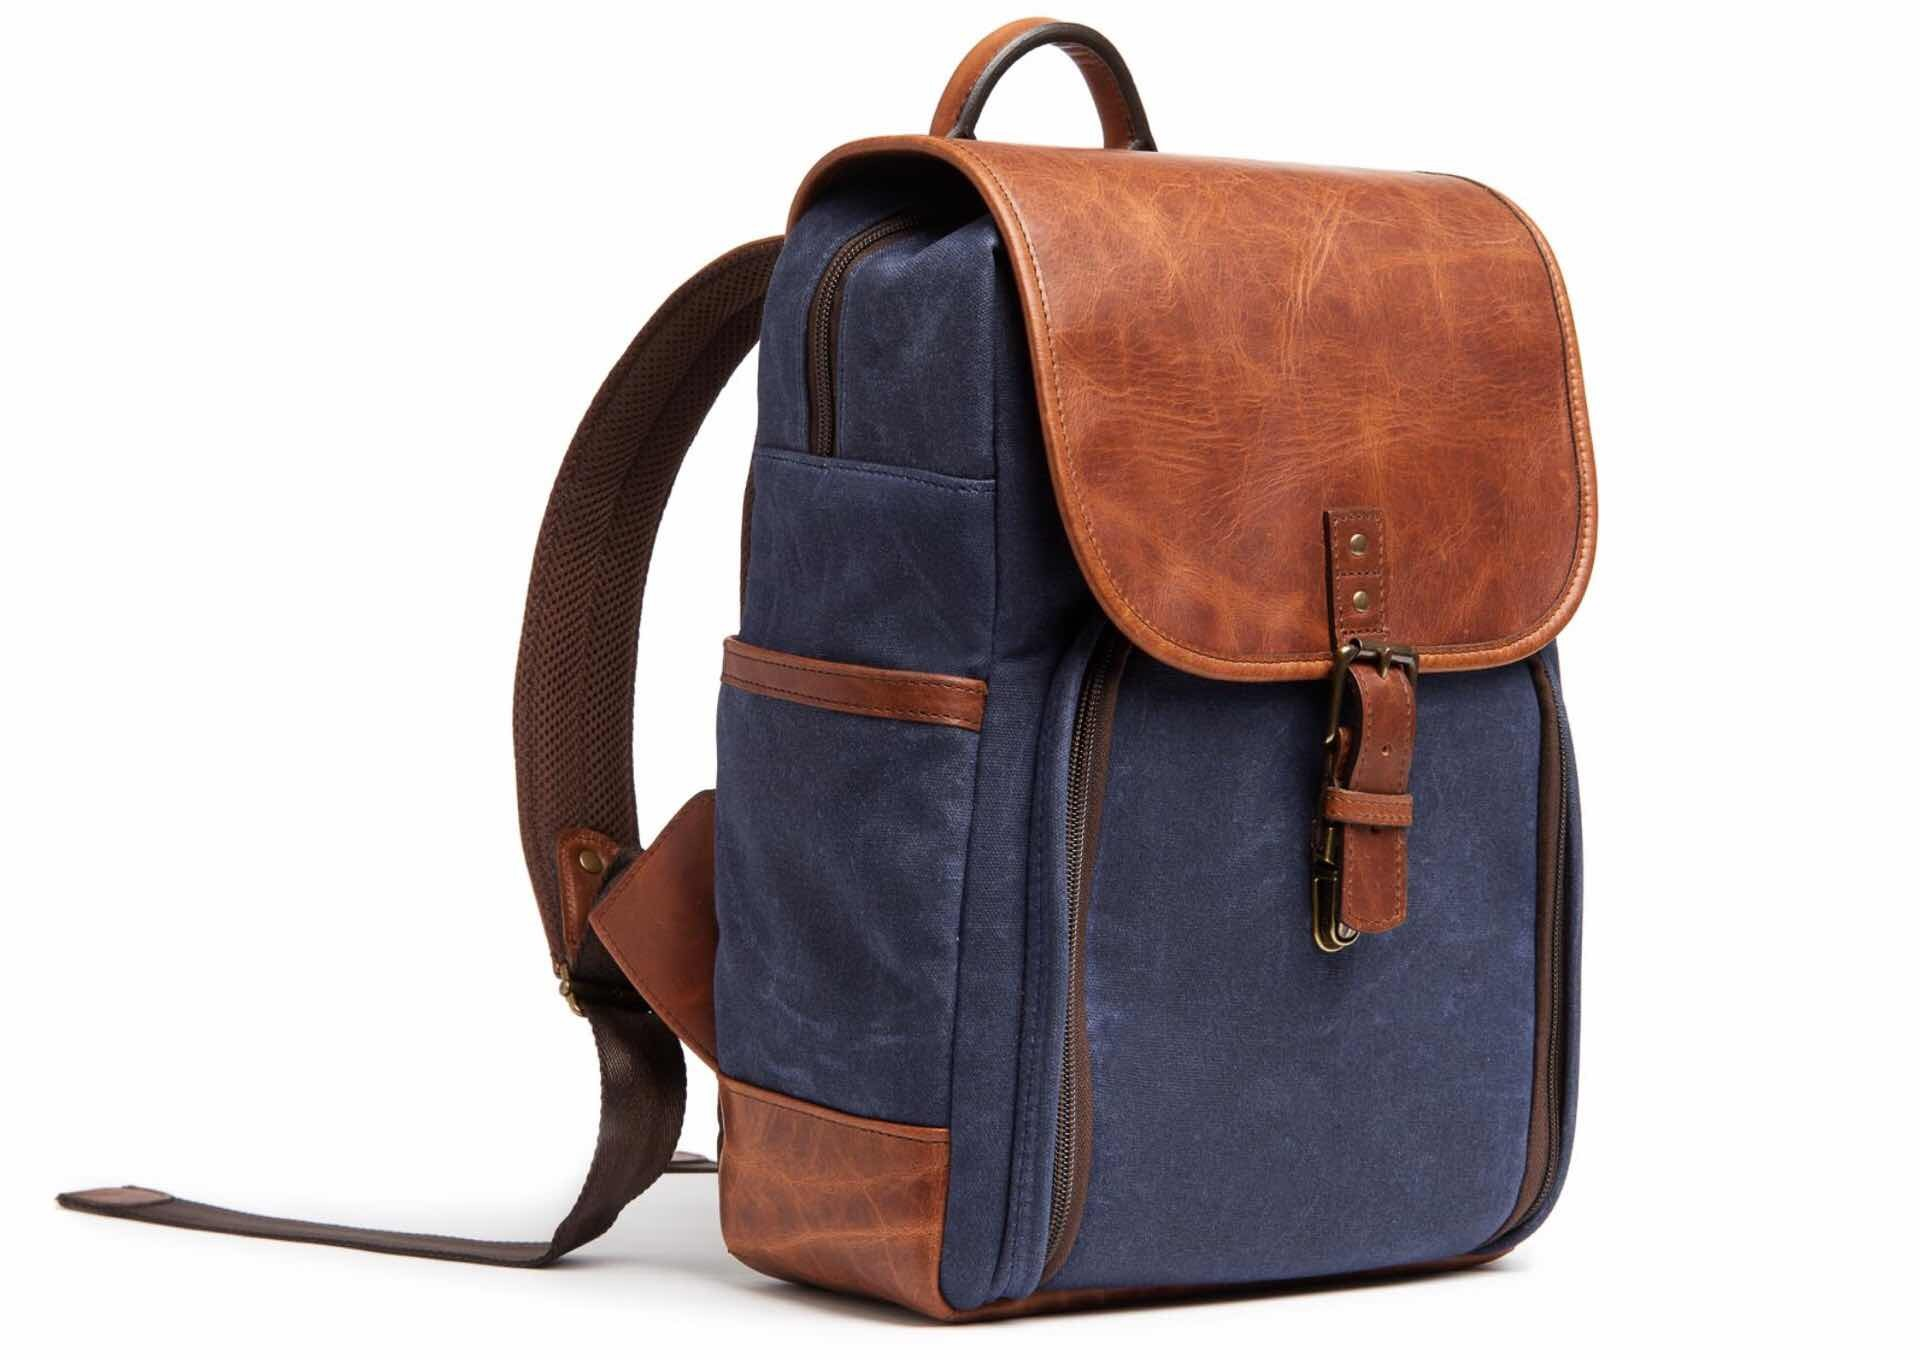 ONA Monterey backpack. ($349, available in Olive, Black, Oxford Blue / Navy, and Smoke / Gray)